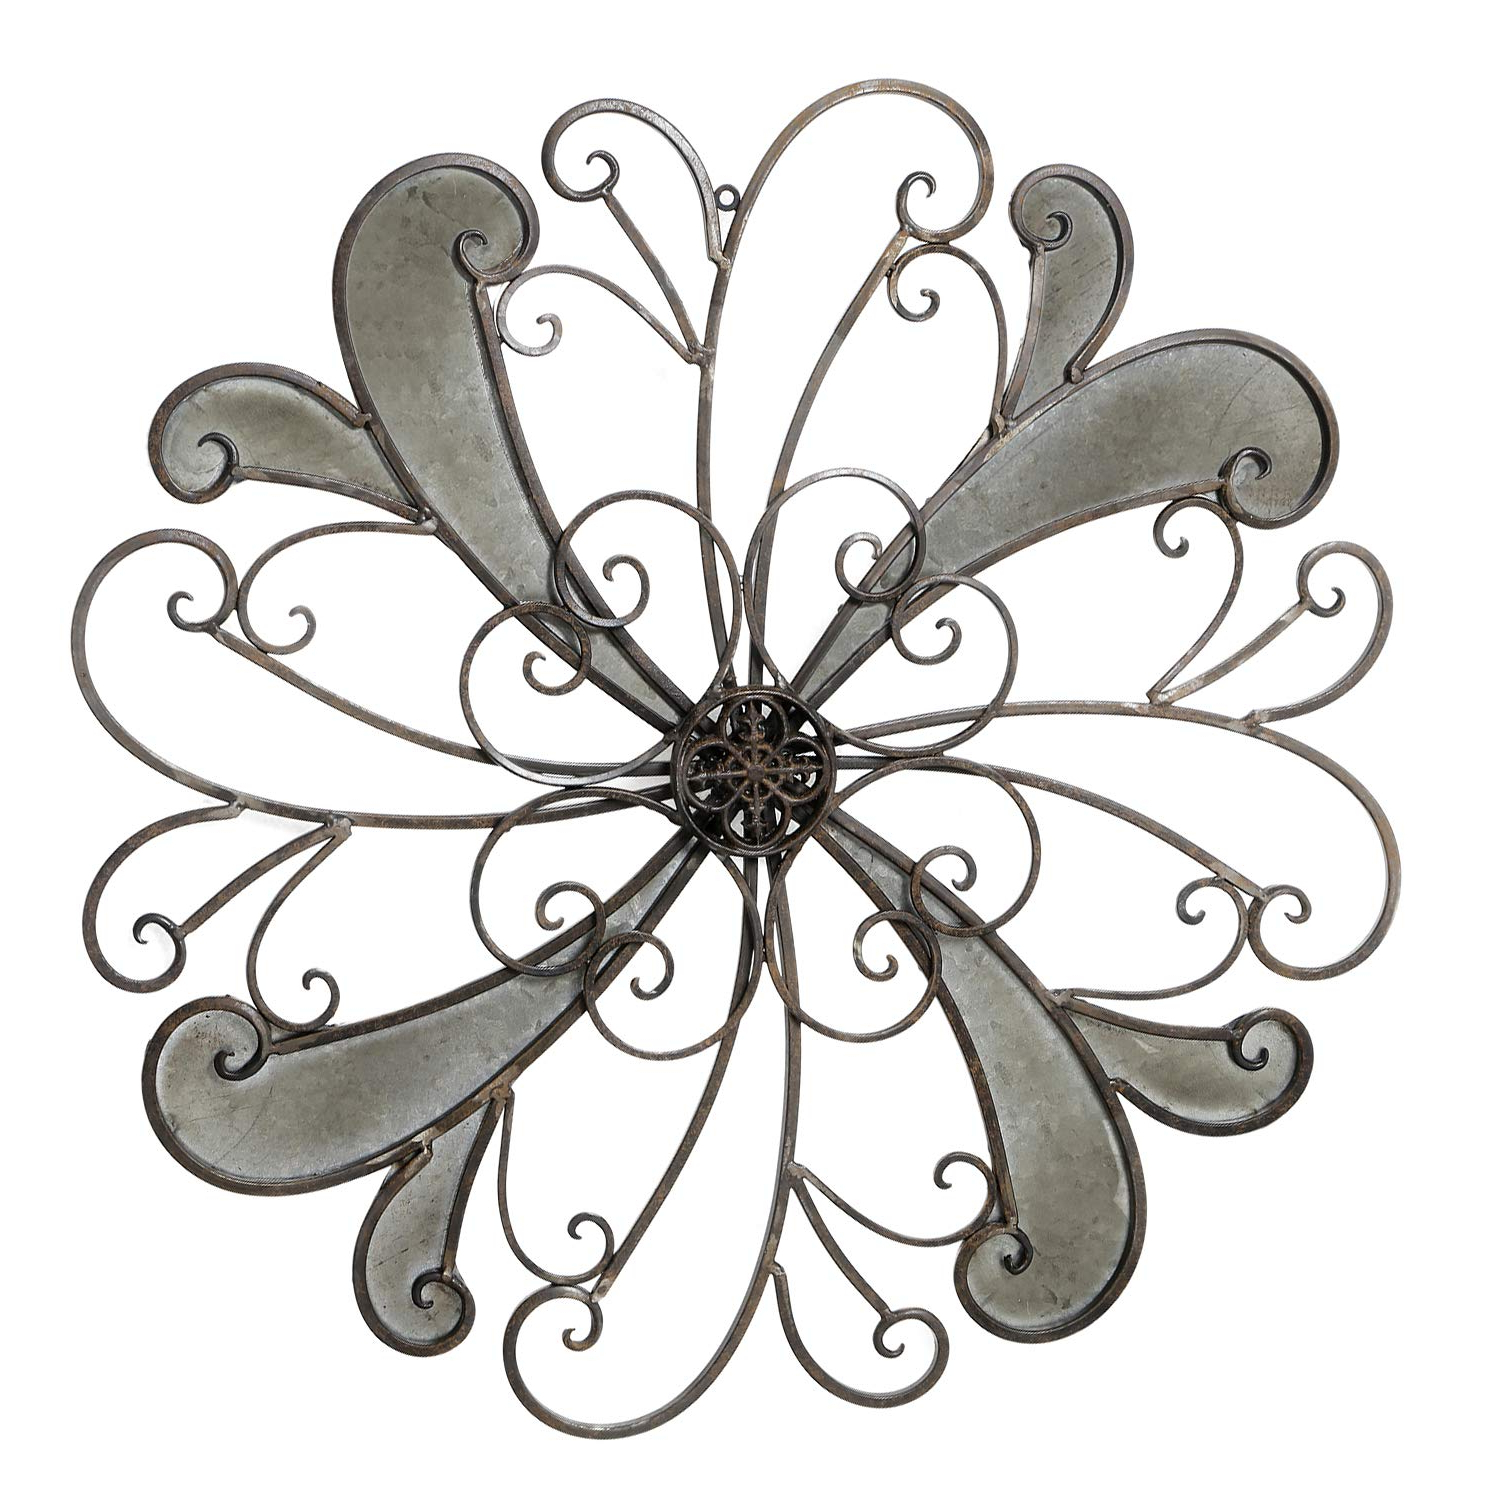 Favorite Flower Urban Design Metal Wall Decor Intended For Amazon: Adeco Rustic Urban Flower Scrolled Design, Metal Wall (View 10 of 20)